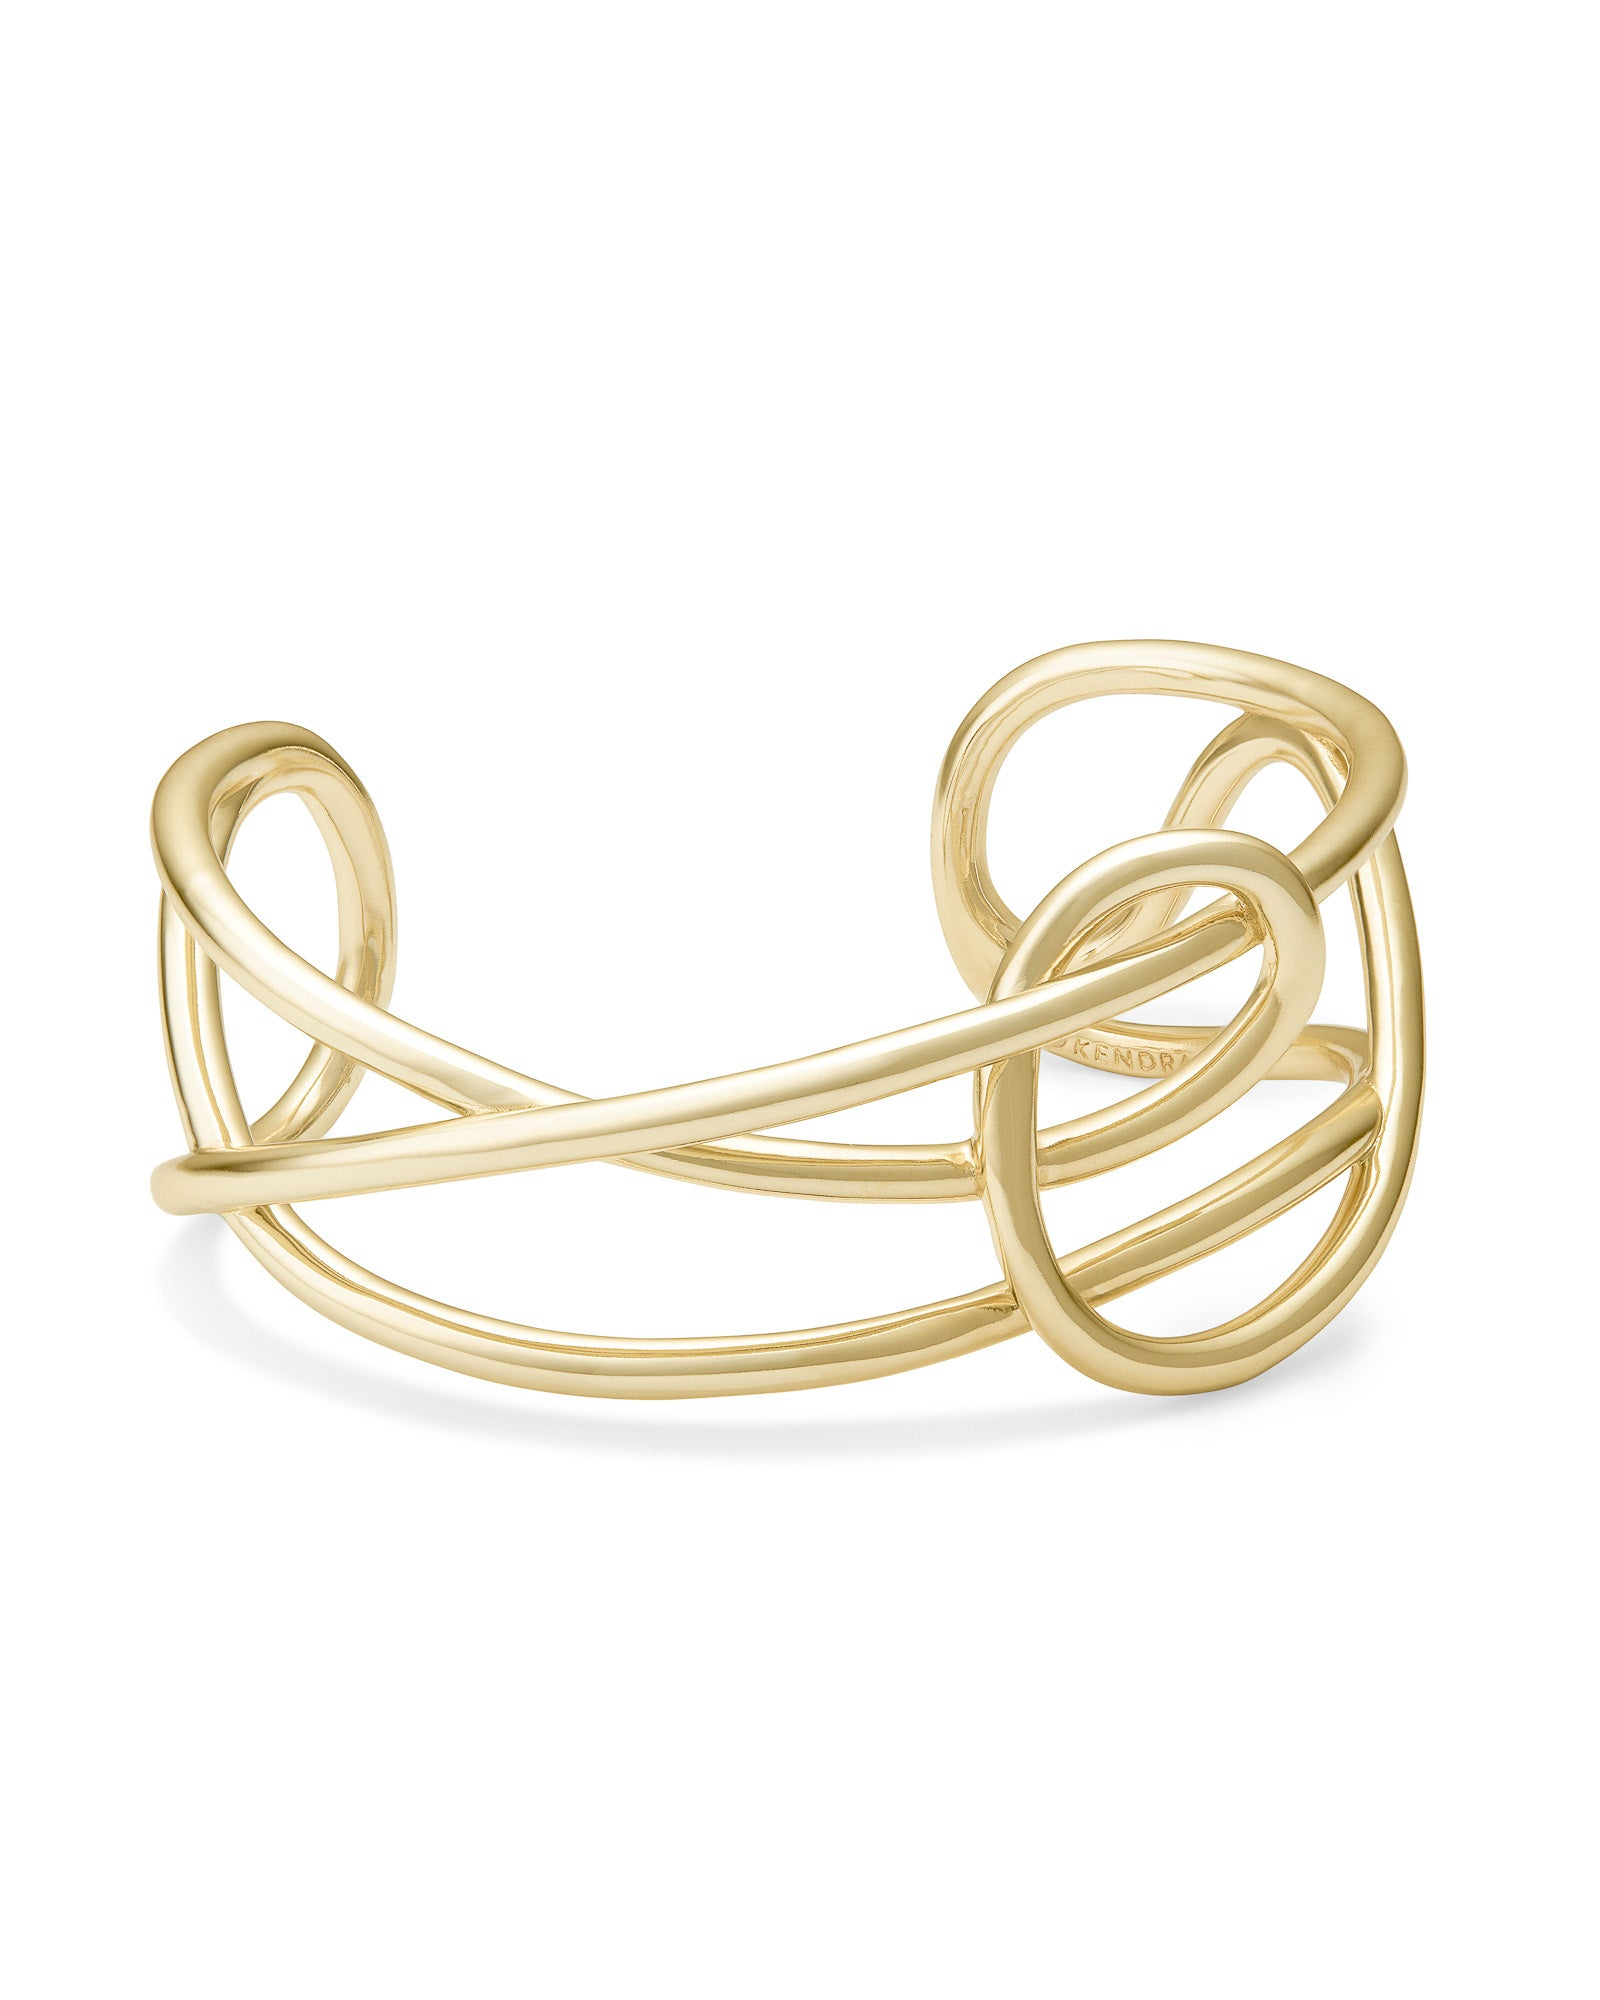 Myles Cuff Bracelet in Gold Metal